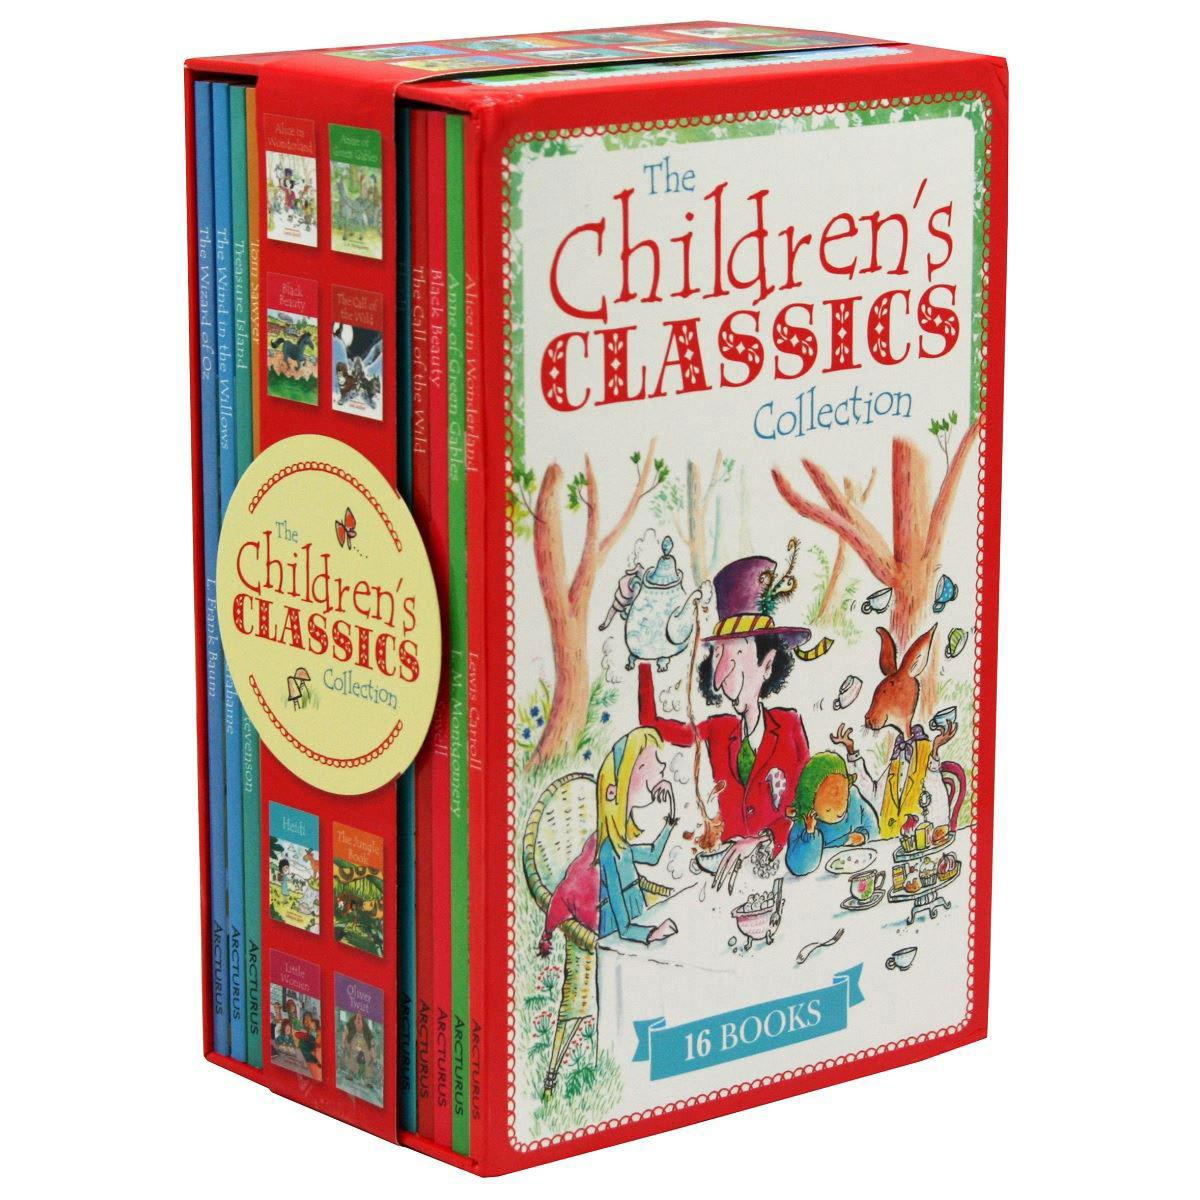 Image of Children's Classics Collection 16 Books Box Set